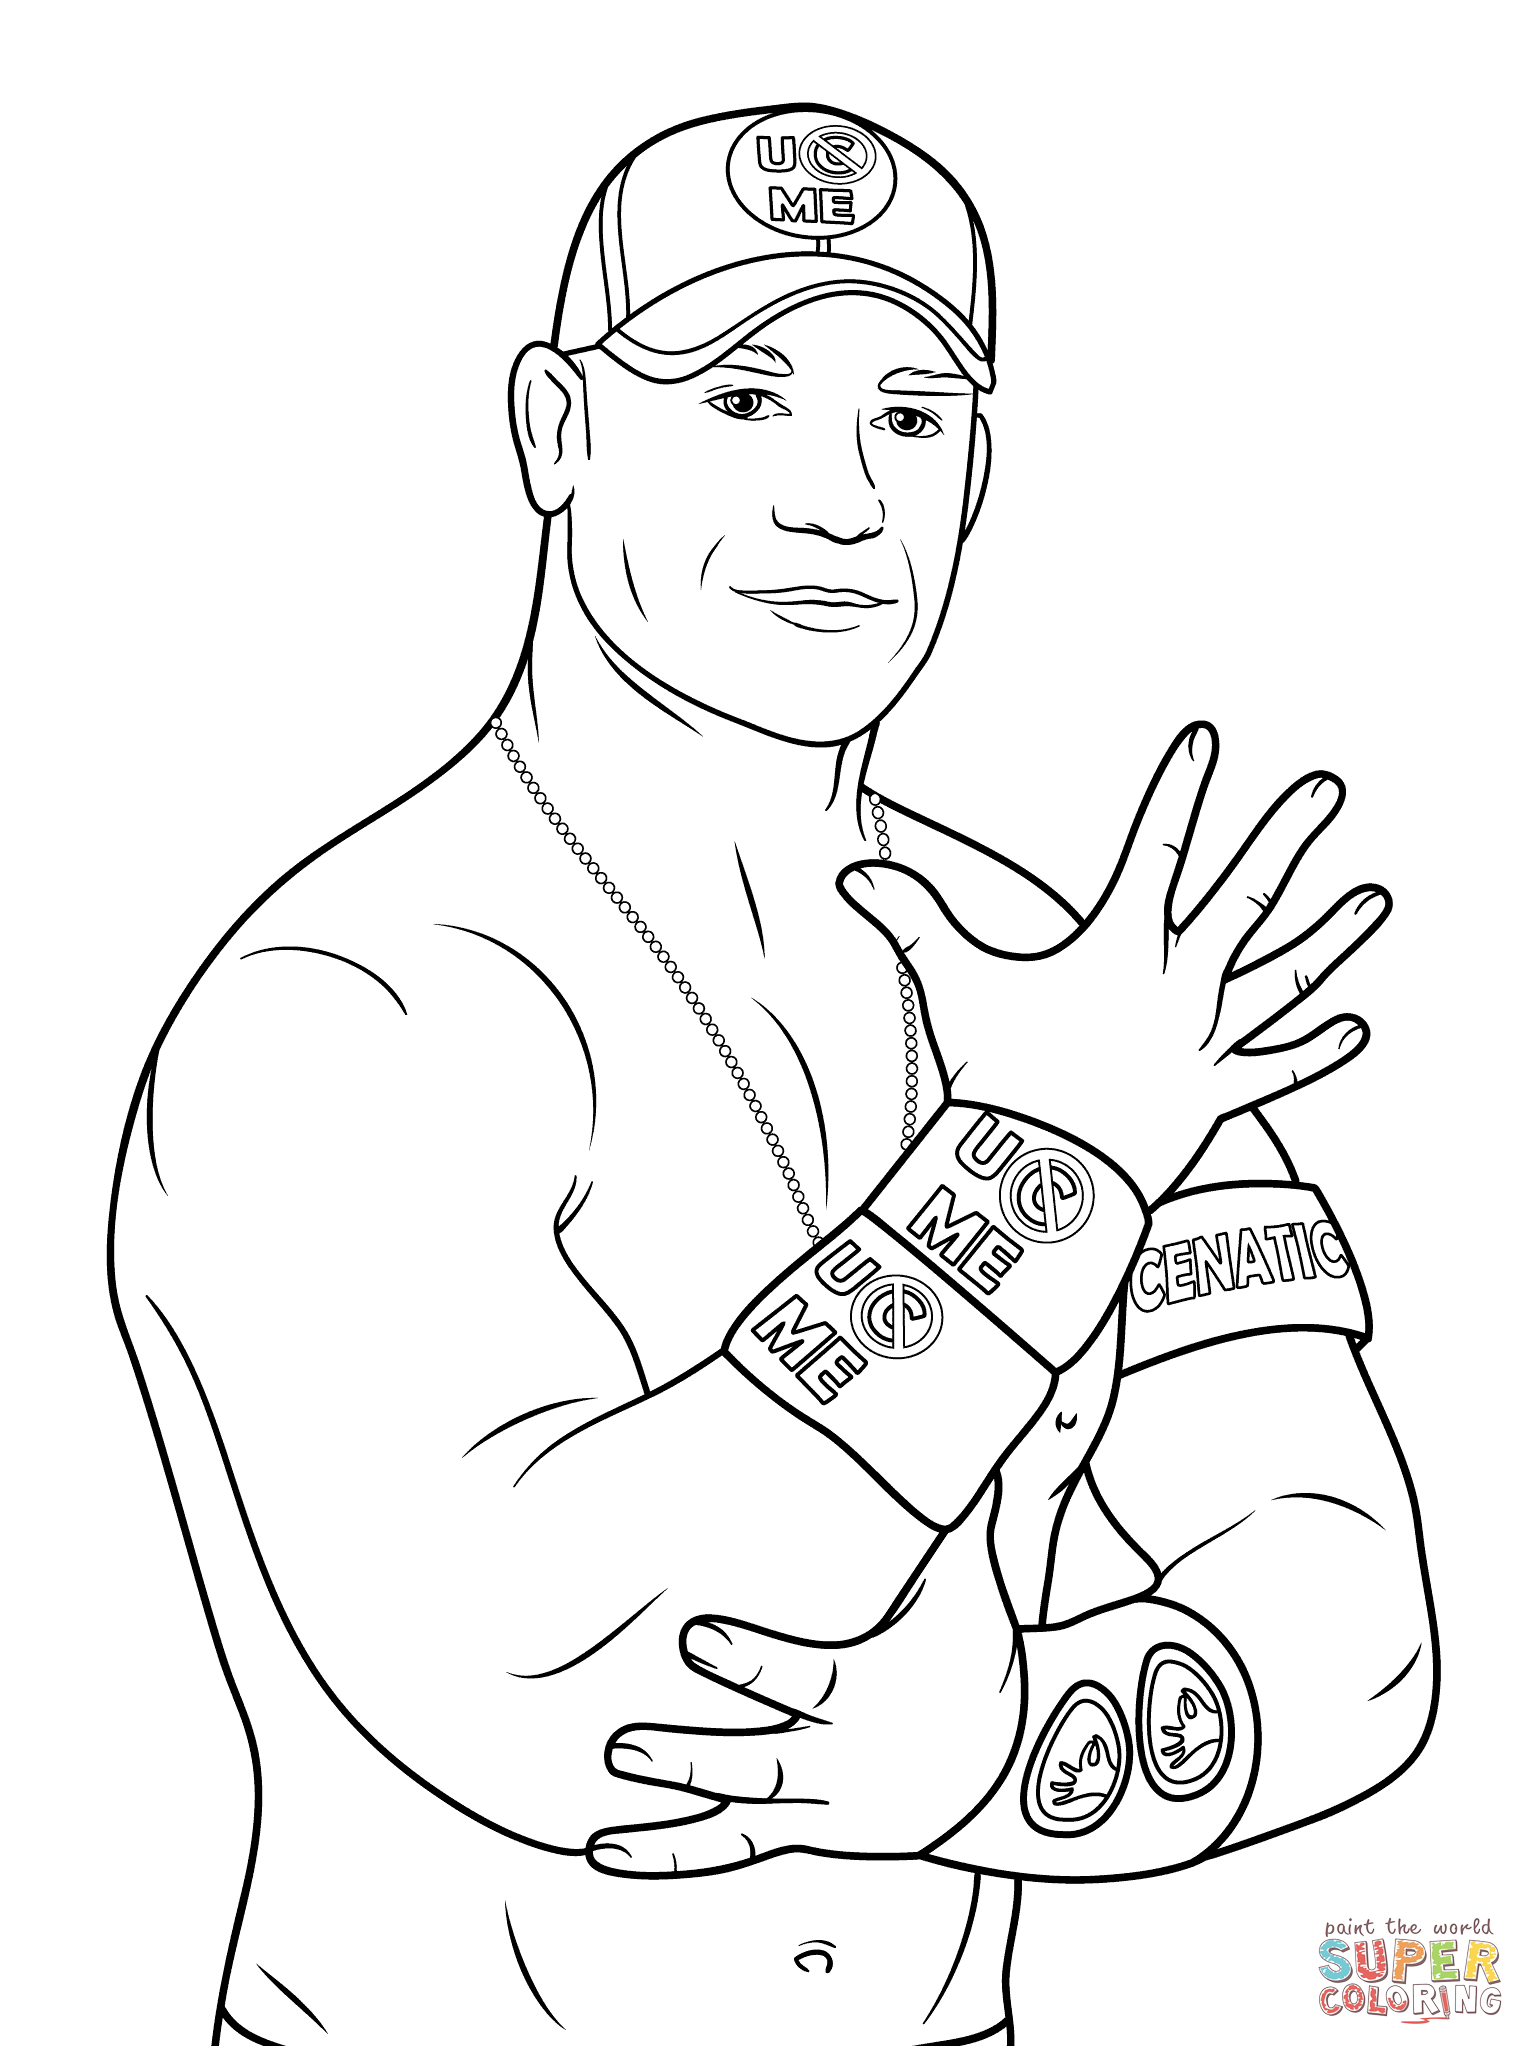 Wwe Coloring Pages Printable Wwe Coloring Pages Superhero Coloring Pages Coloring Pages